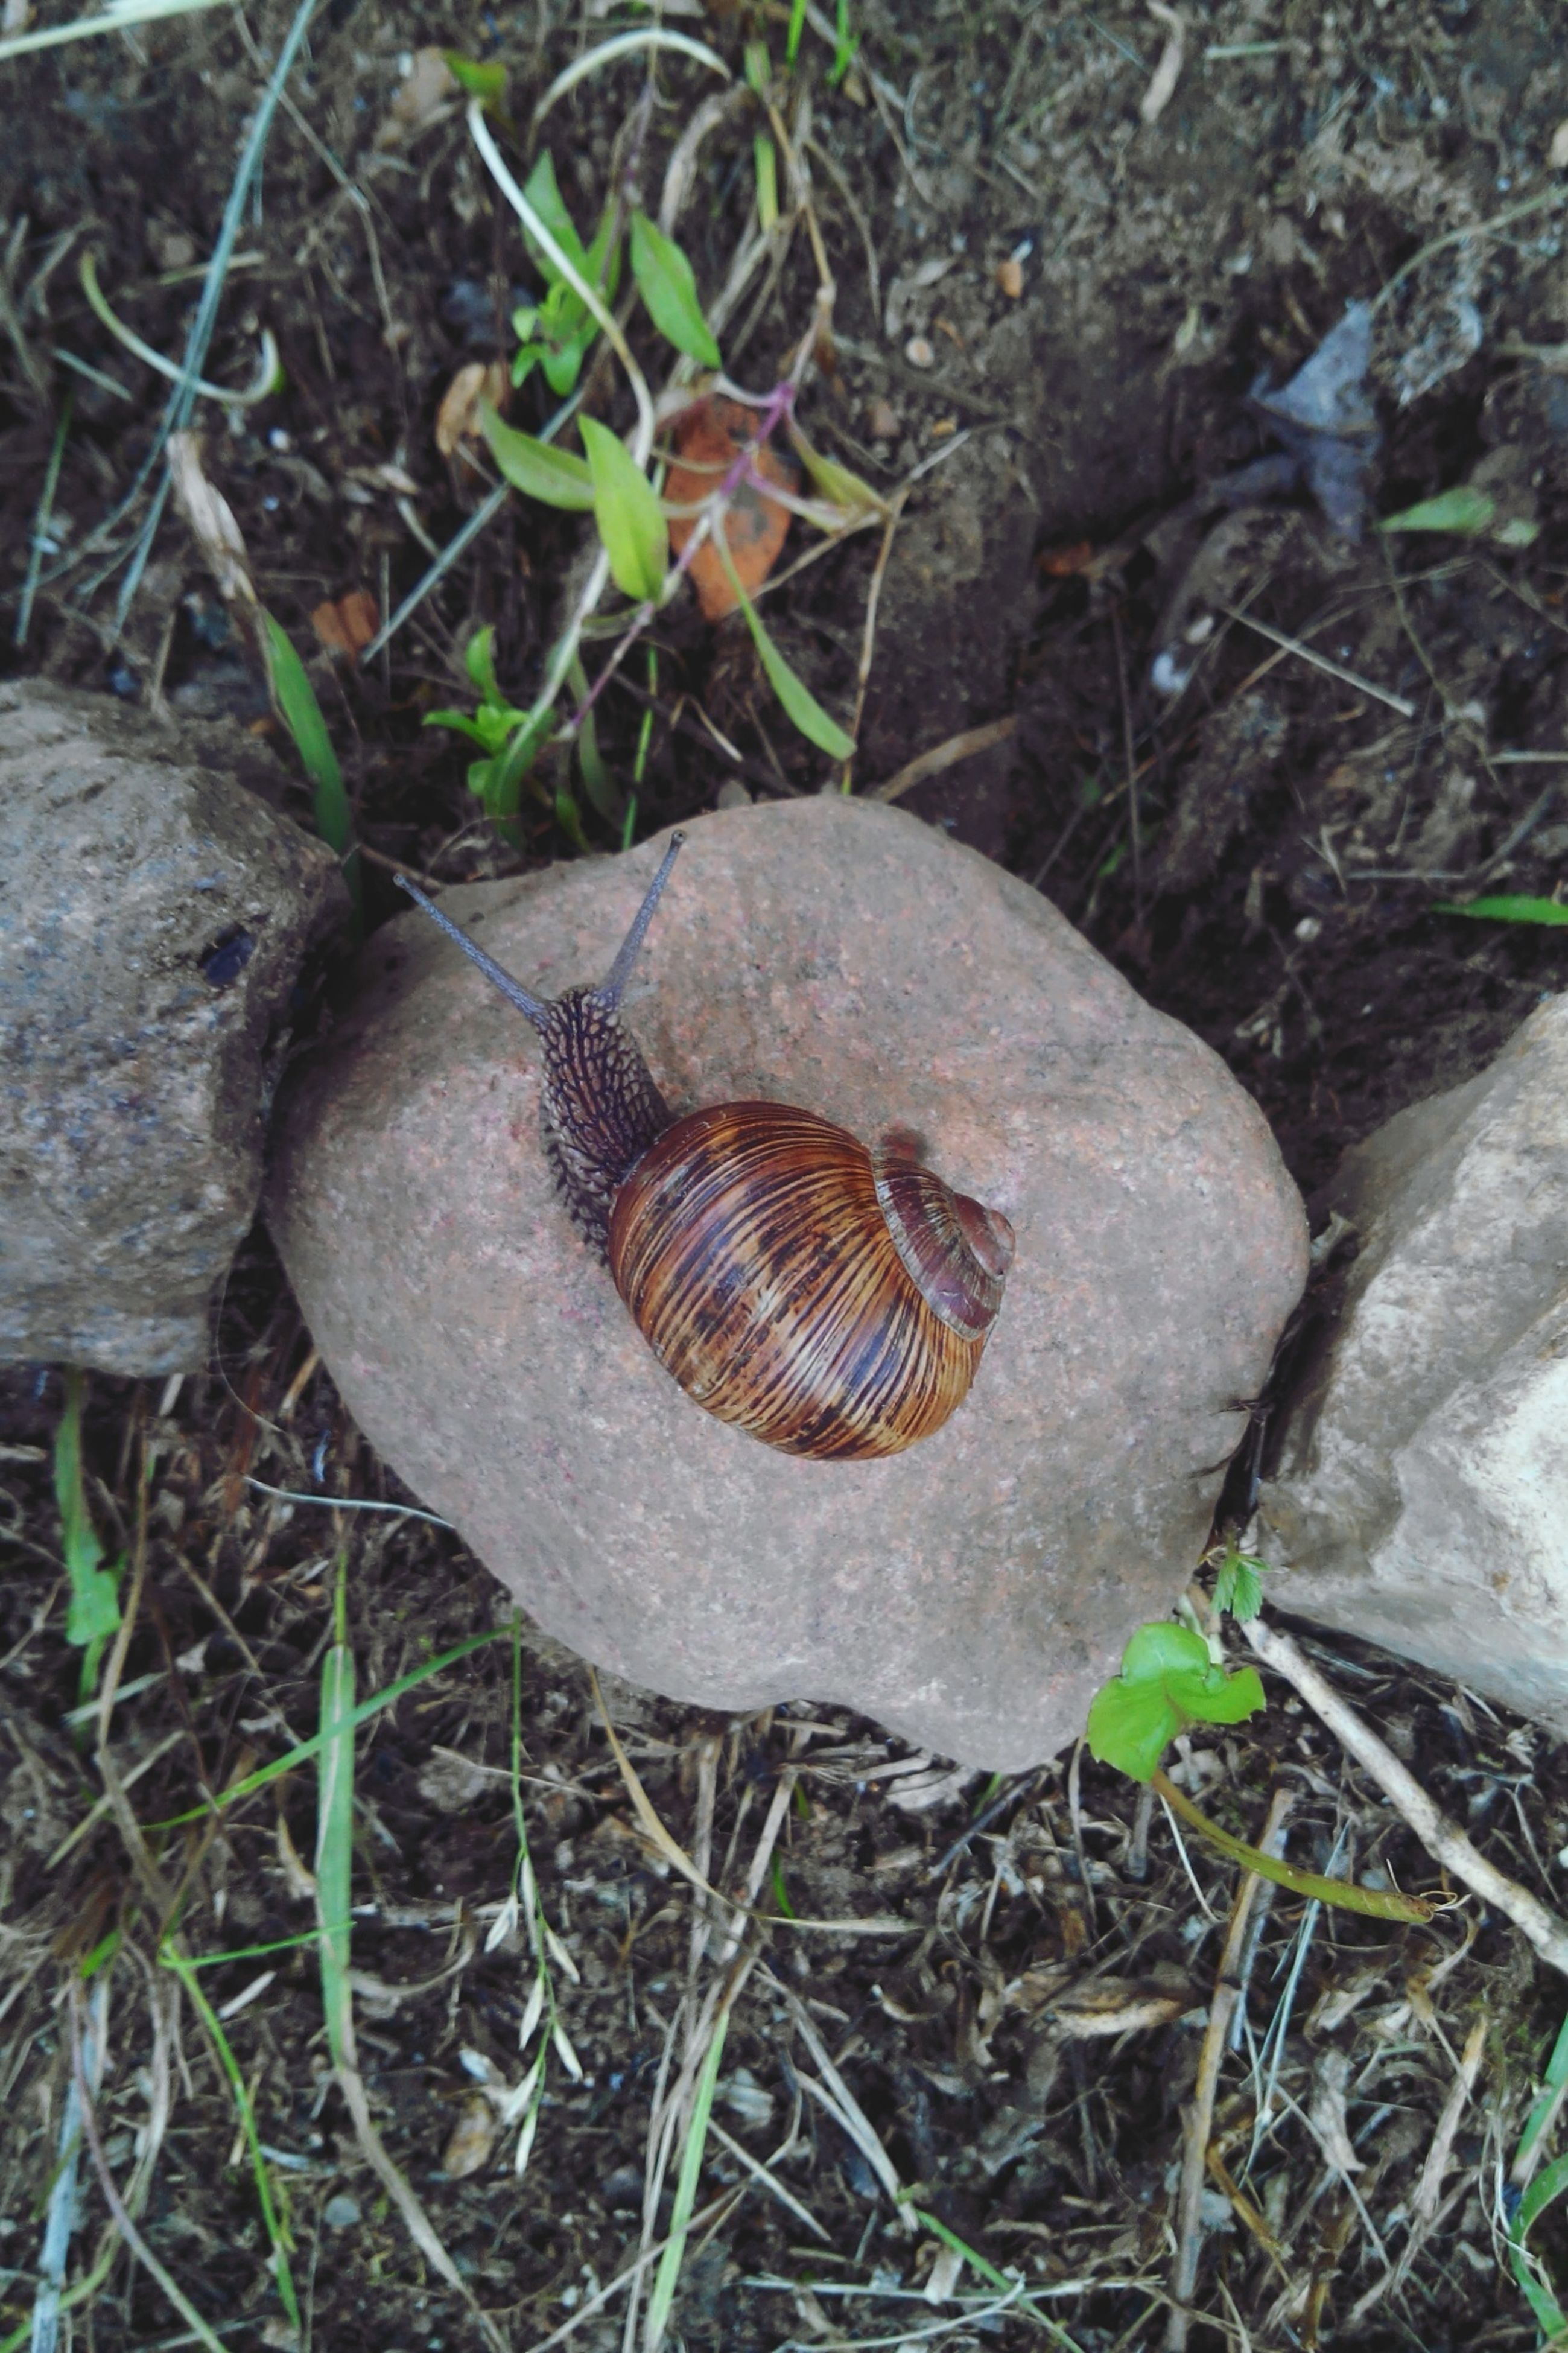 animal themes, animals in the wild, one animal, wildlife, high angle view, animal shell, nature, grass, snail, field, close-up, ground, day, outdoors, rock - object, no people, shell, full length, plant, mollusk